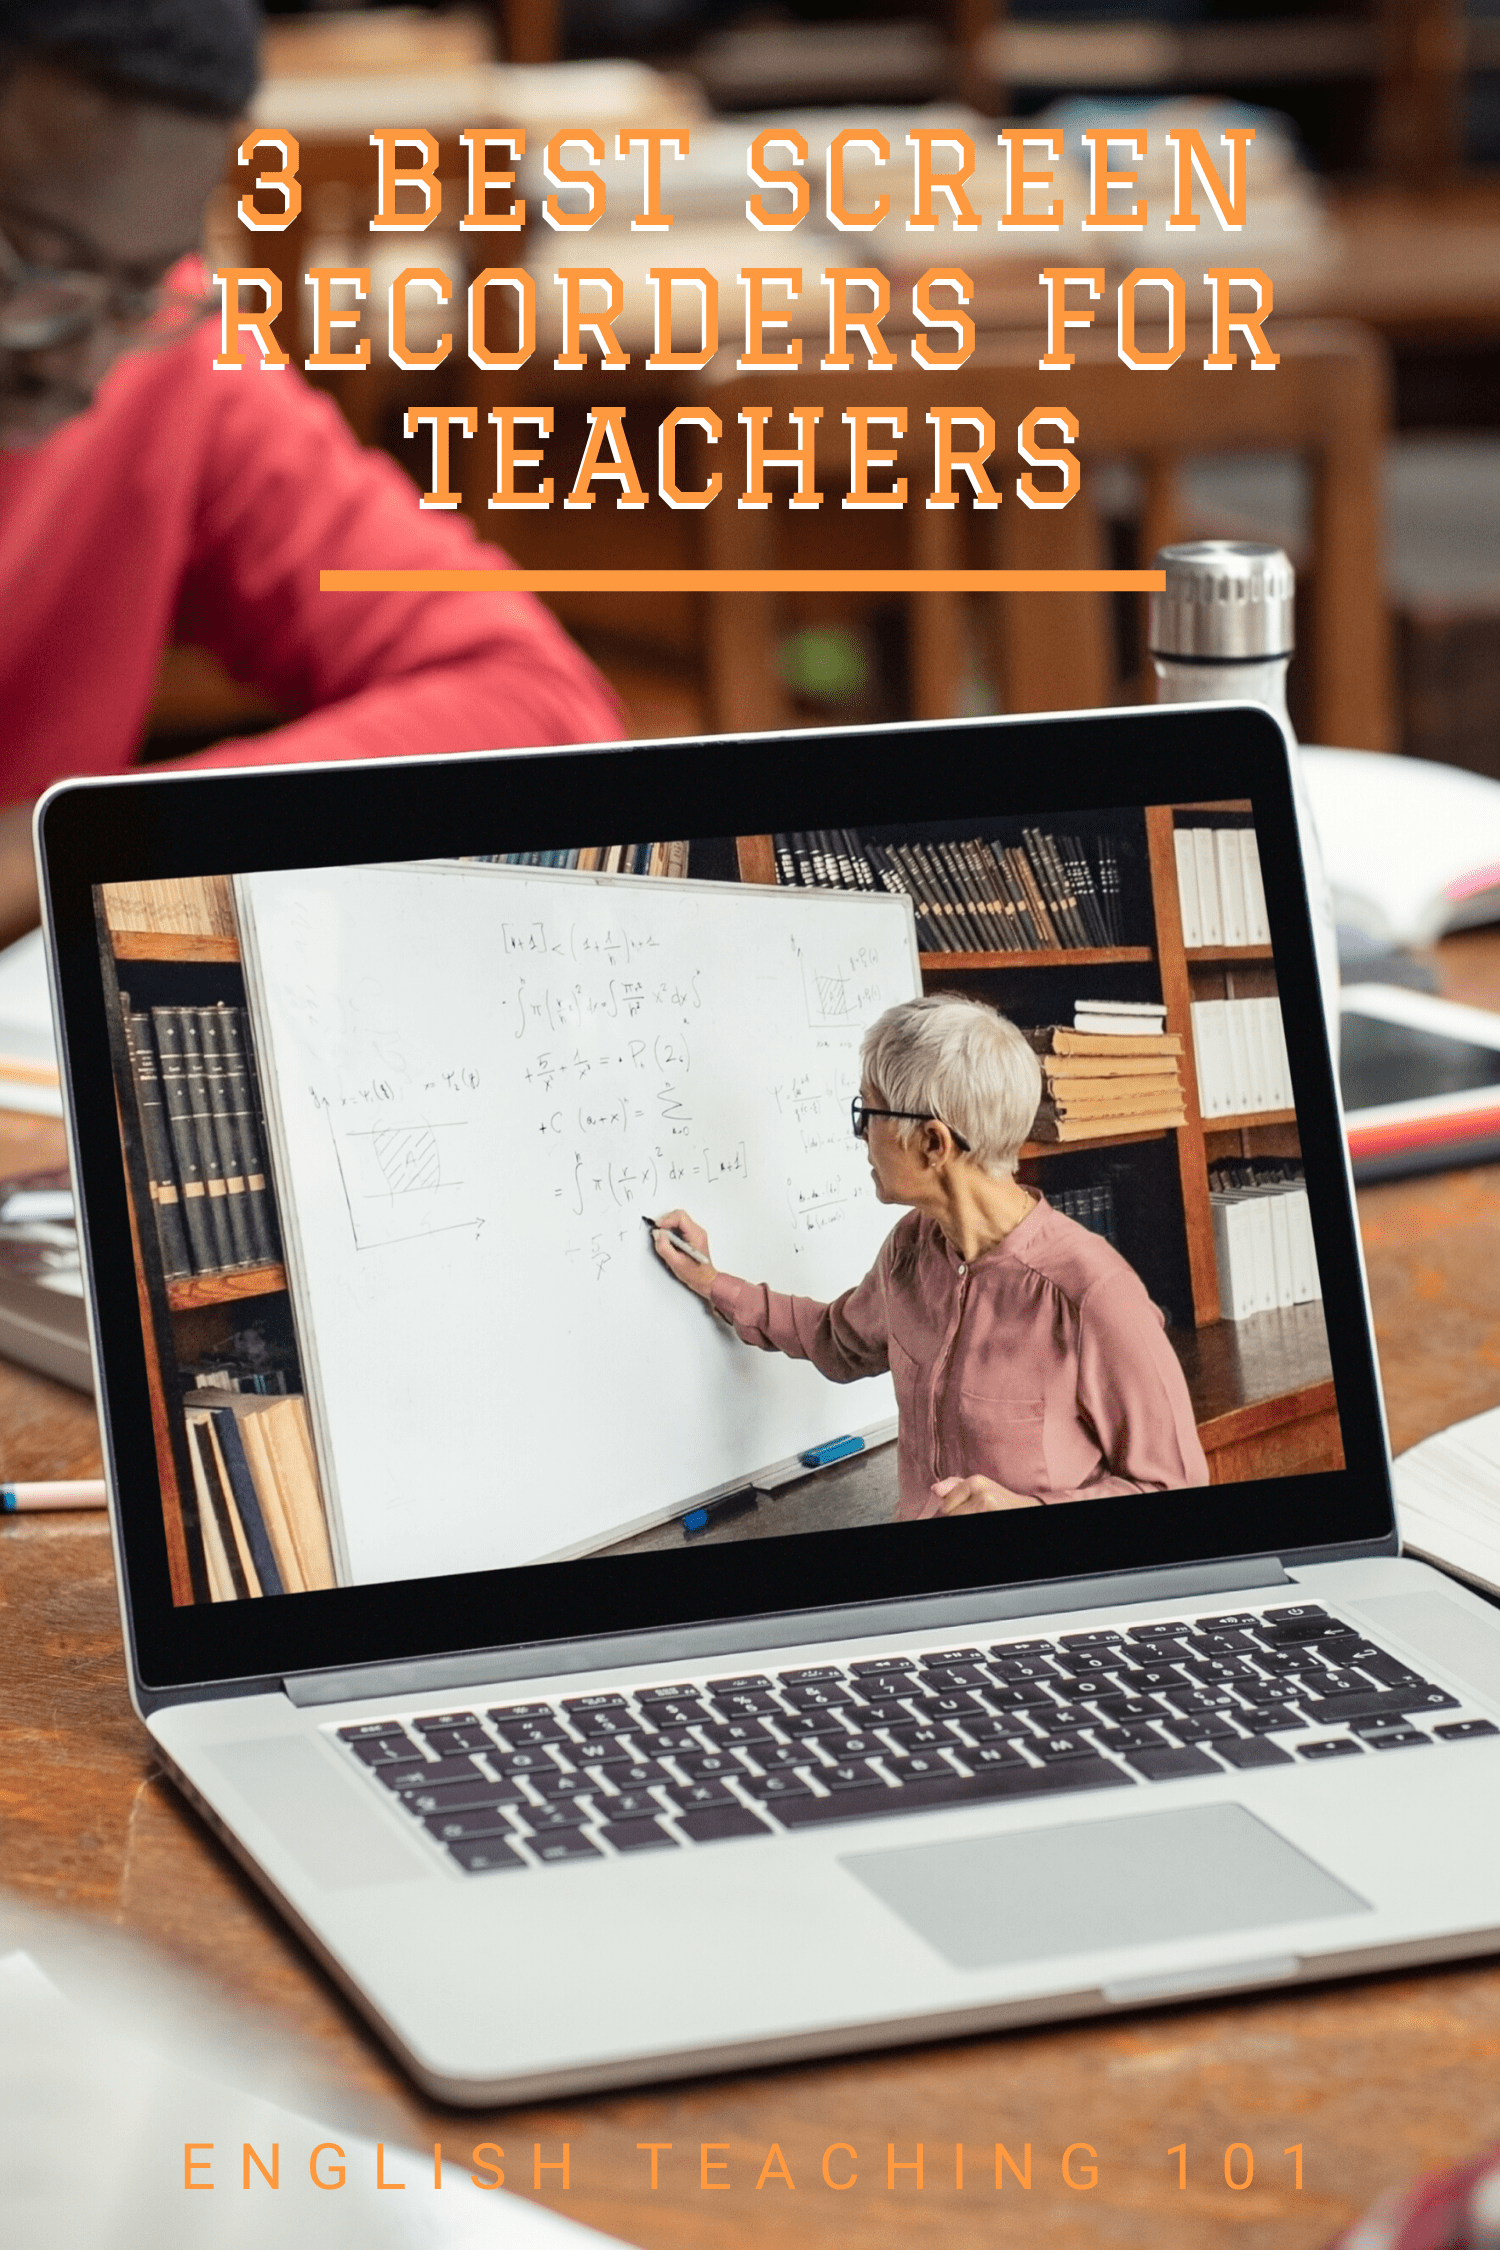 Free screen recorders for teachers